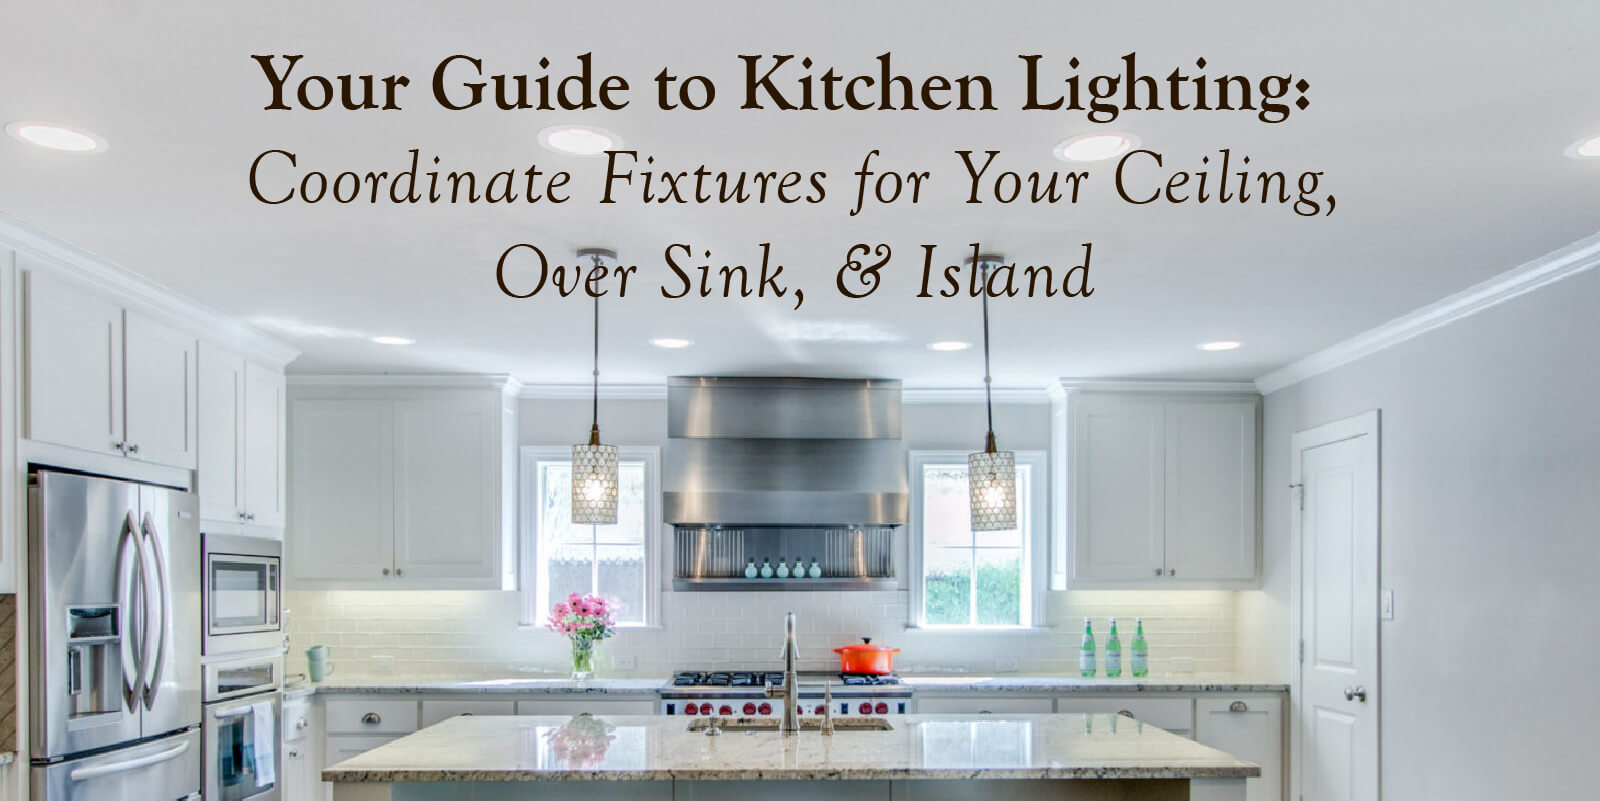 Kitchen Lighting Fixtures for Your Ceiling, Island, Table and Counters